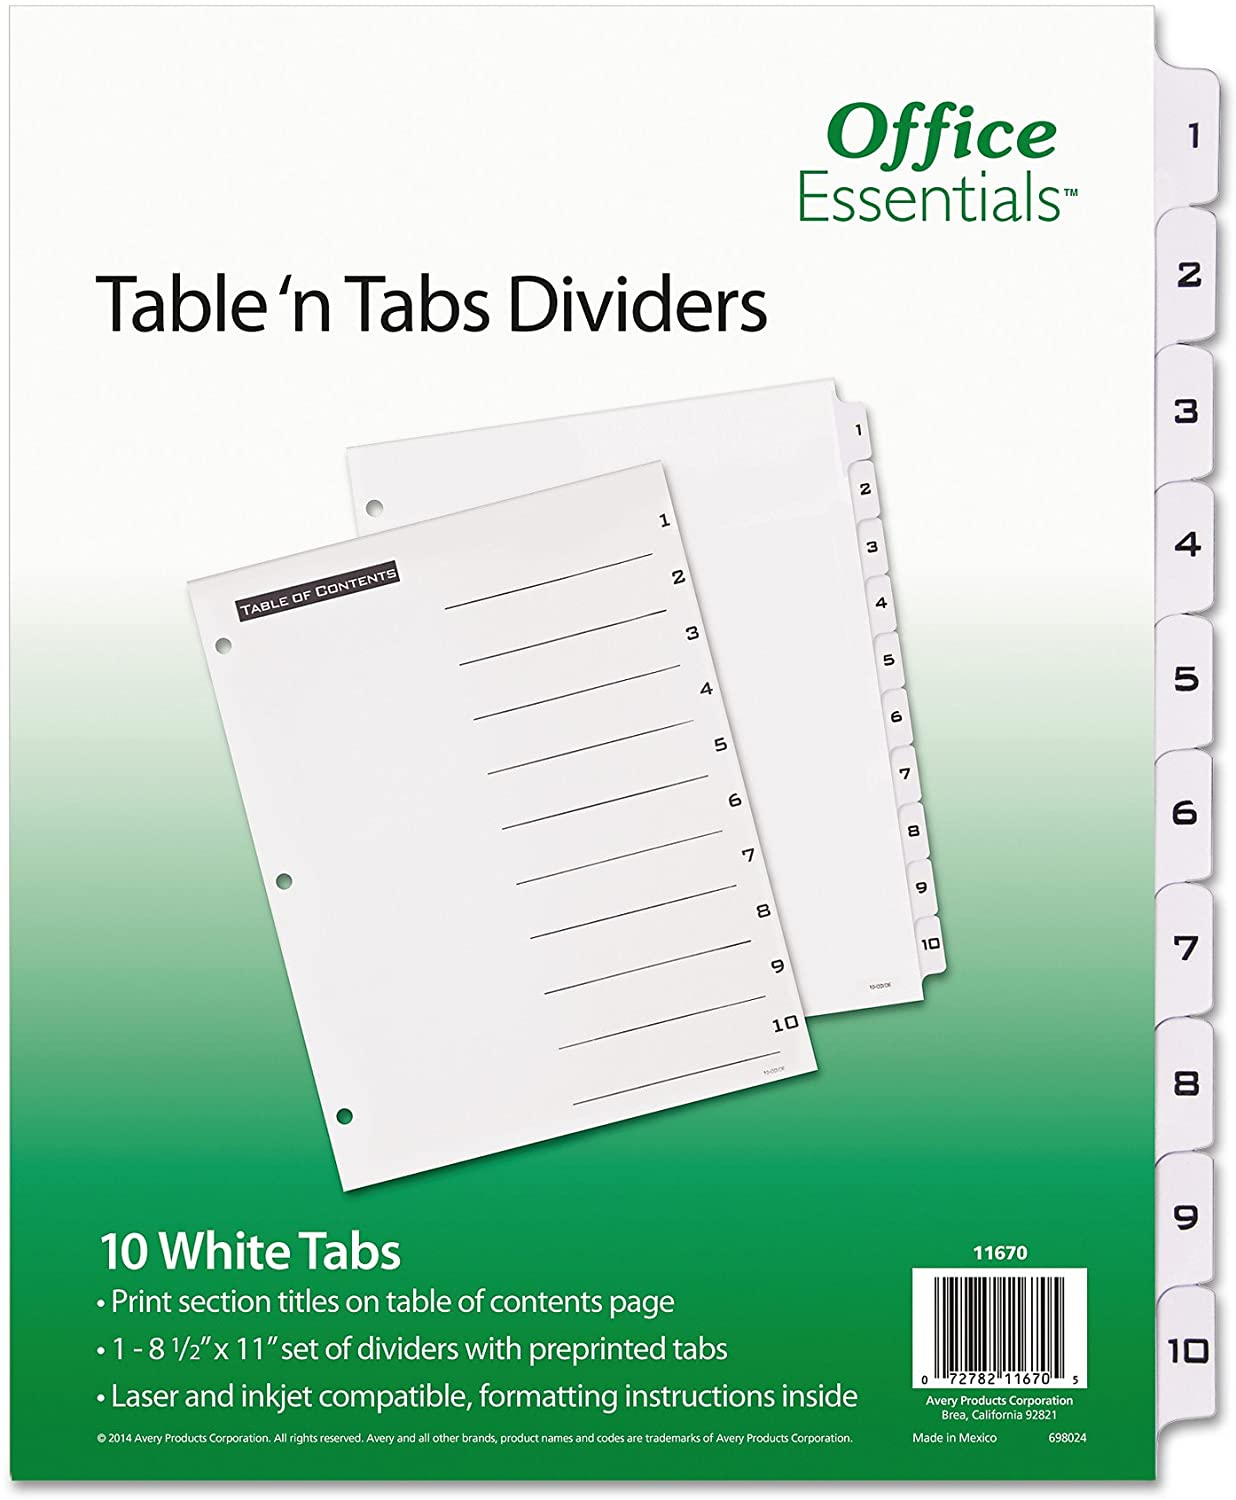 Office Essentials 11670 Table 'n Tabs Dividers, 10-Tab, Letter